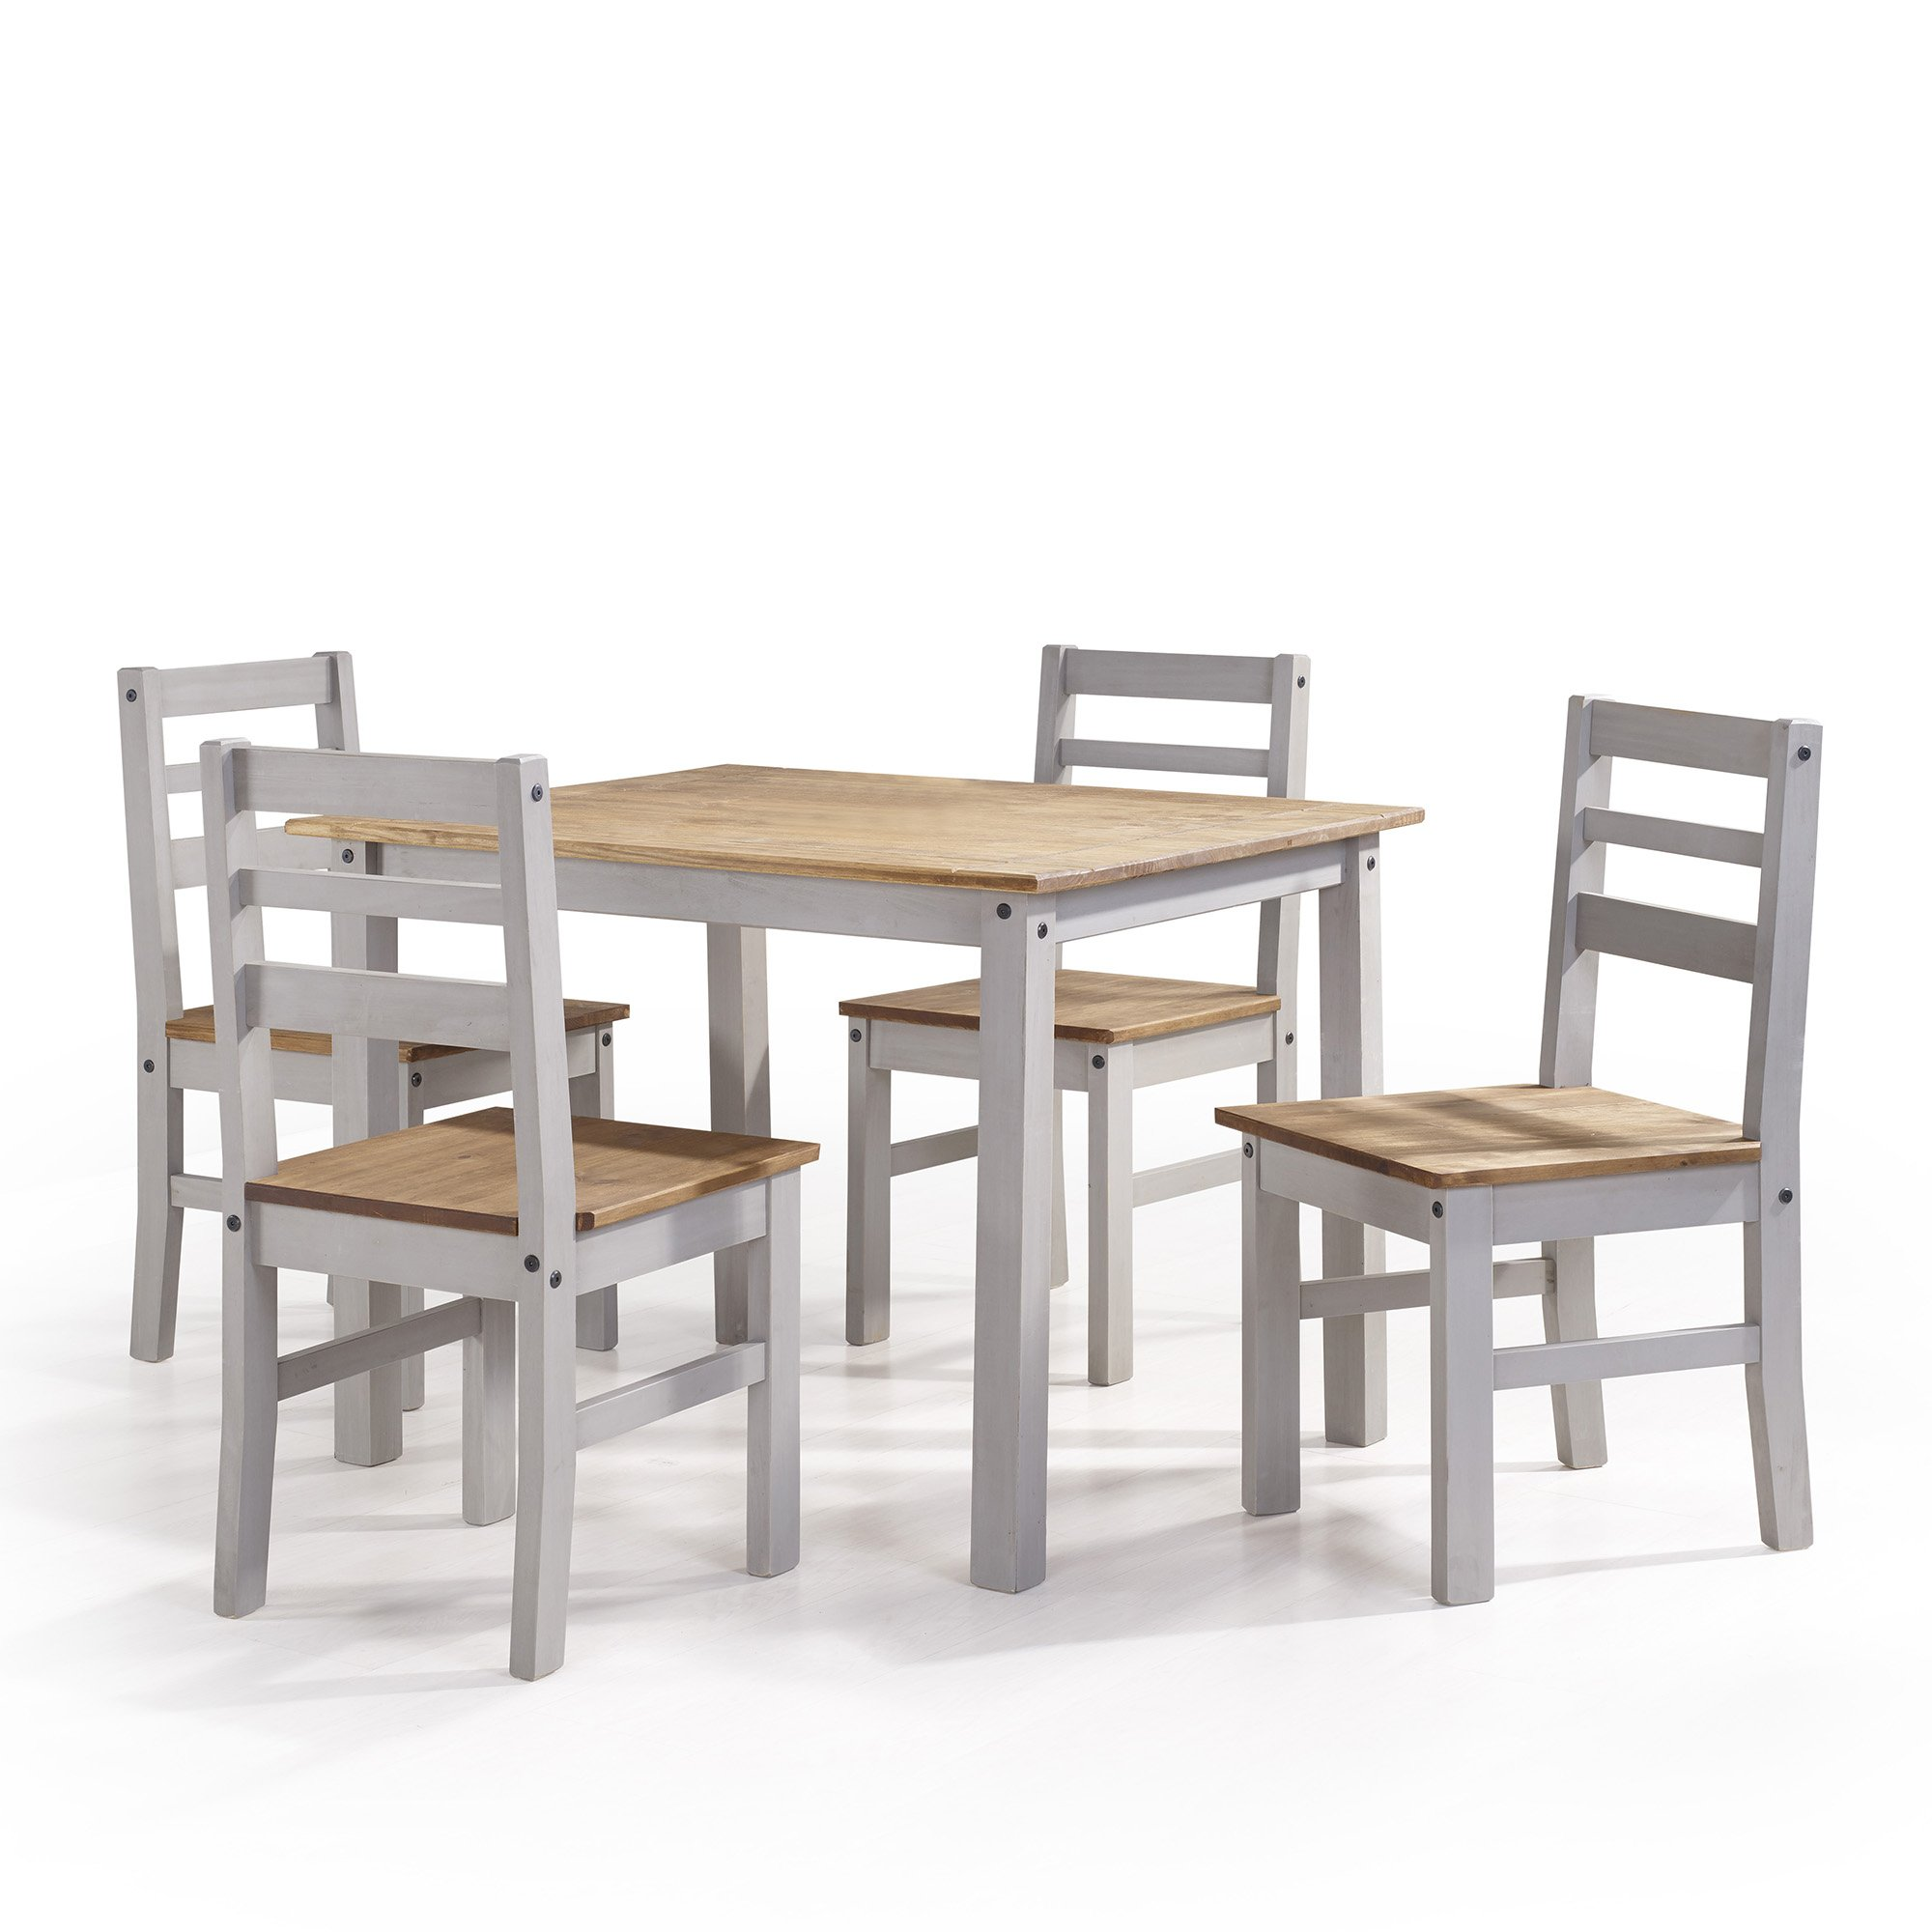 Manhattan Comfort Maiden Collection Reclaimed Traditional Modern 5 Piece Pine Wood Dining Set, 4 Chairs and 1 Table Wood/Gray